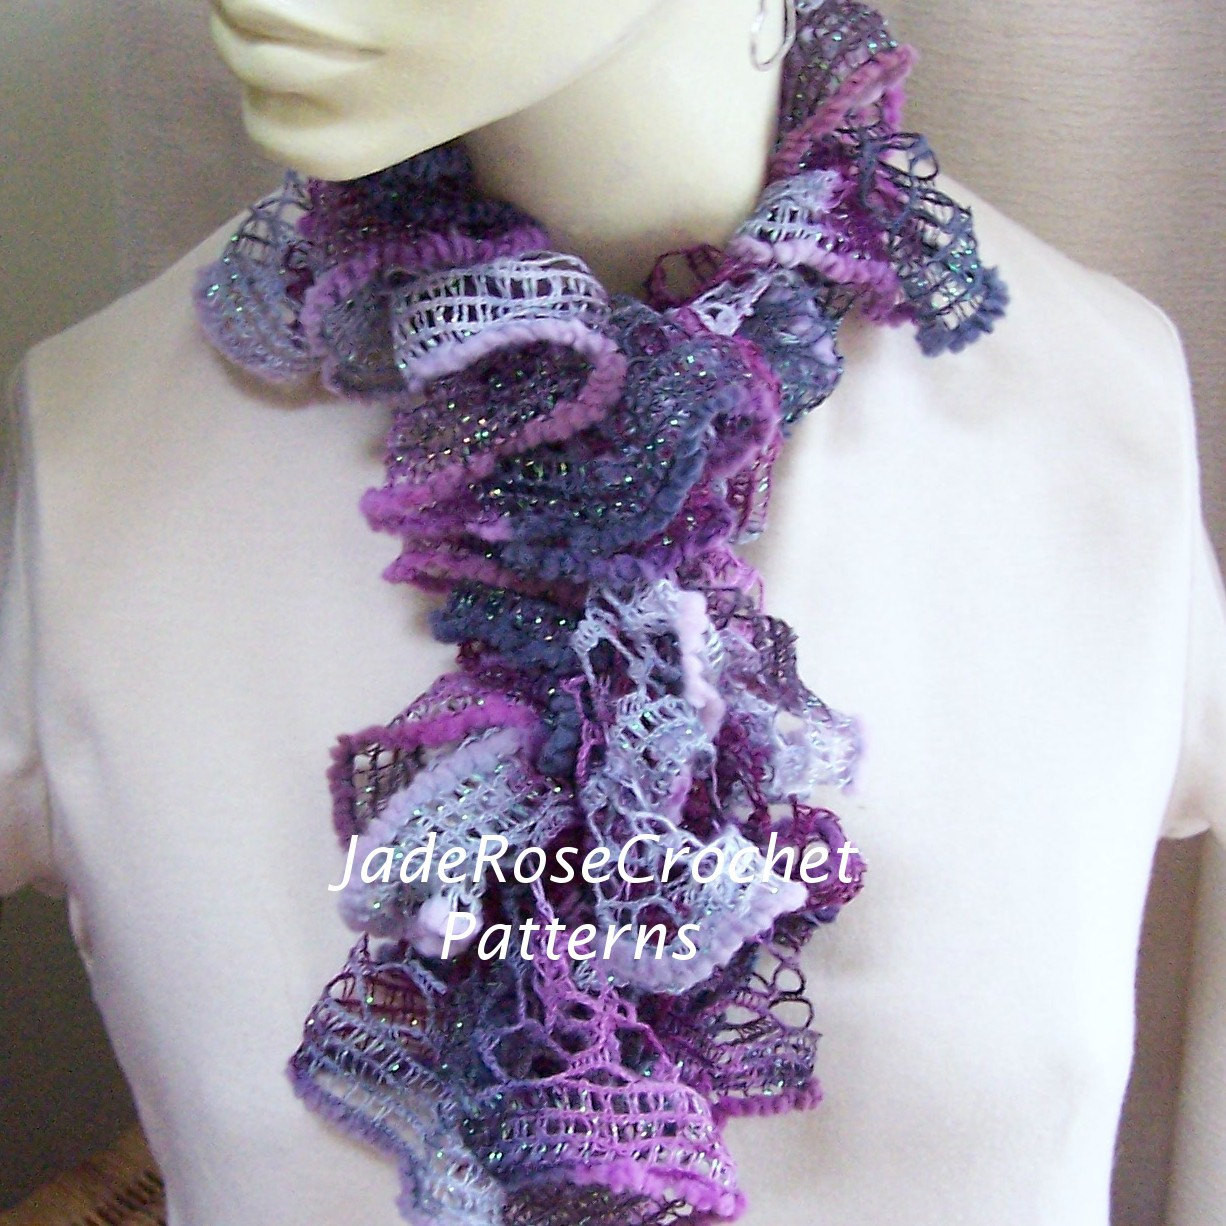 New How to Crochet A Ruffle Scarf with Ribbon Yarn Crochet Ruffle Scarf Of Inspirational Firehawke Hooks and Needles Free Pattern Ruffle Scarf Crochet Ruffle Scarf